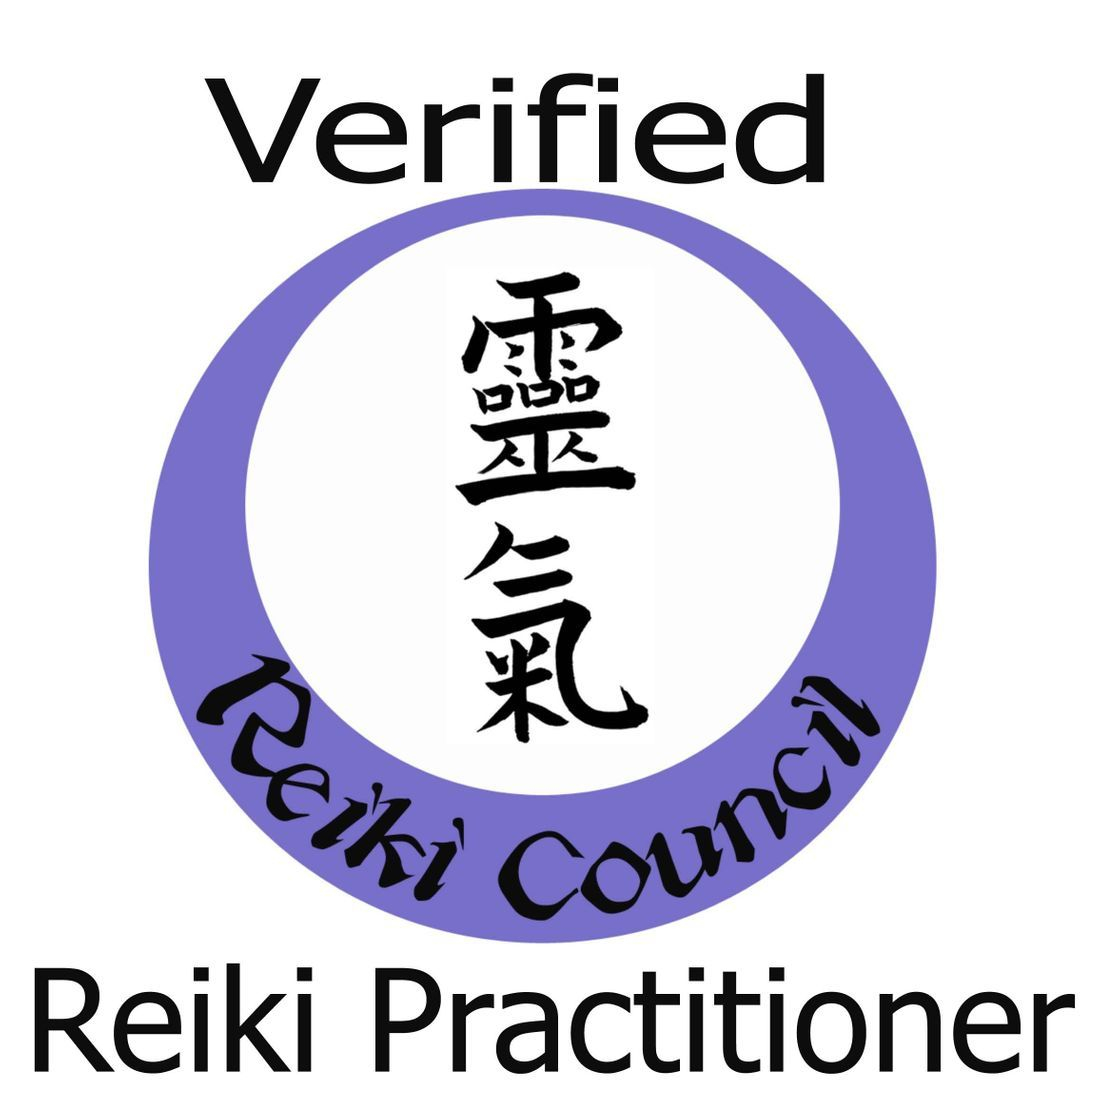 Time For Me - Verified Reiki Practitioner based in Bristol